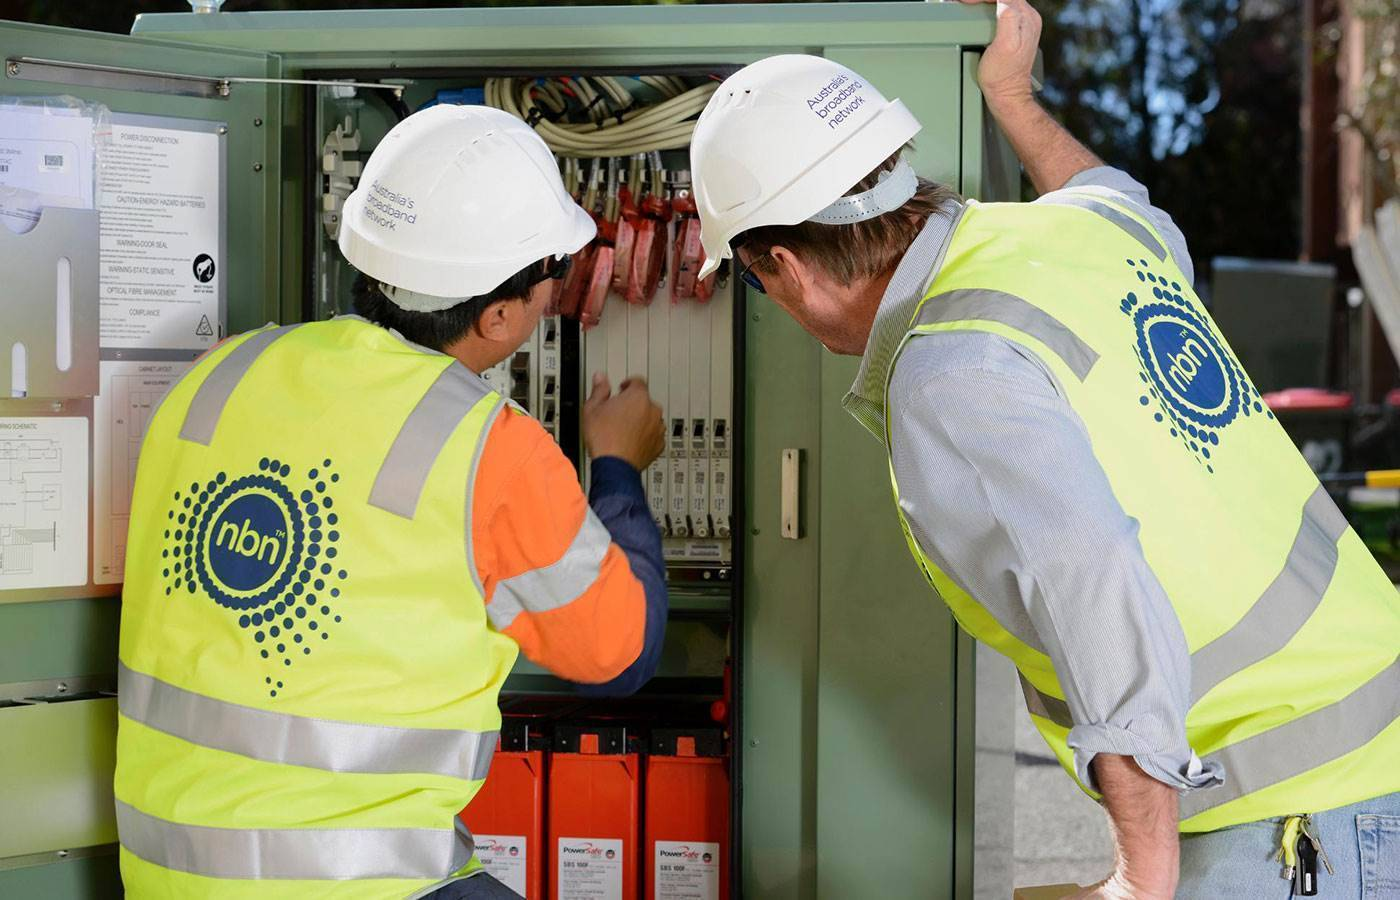 Telstra CEO wants NBN upgrade paths reflected in govt policy